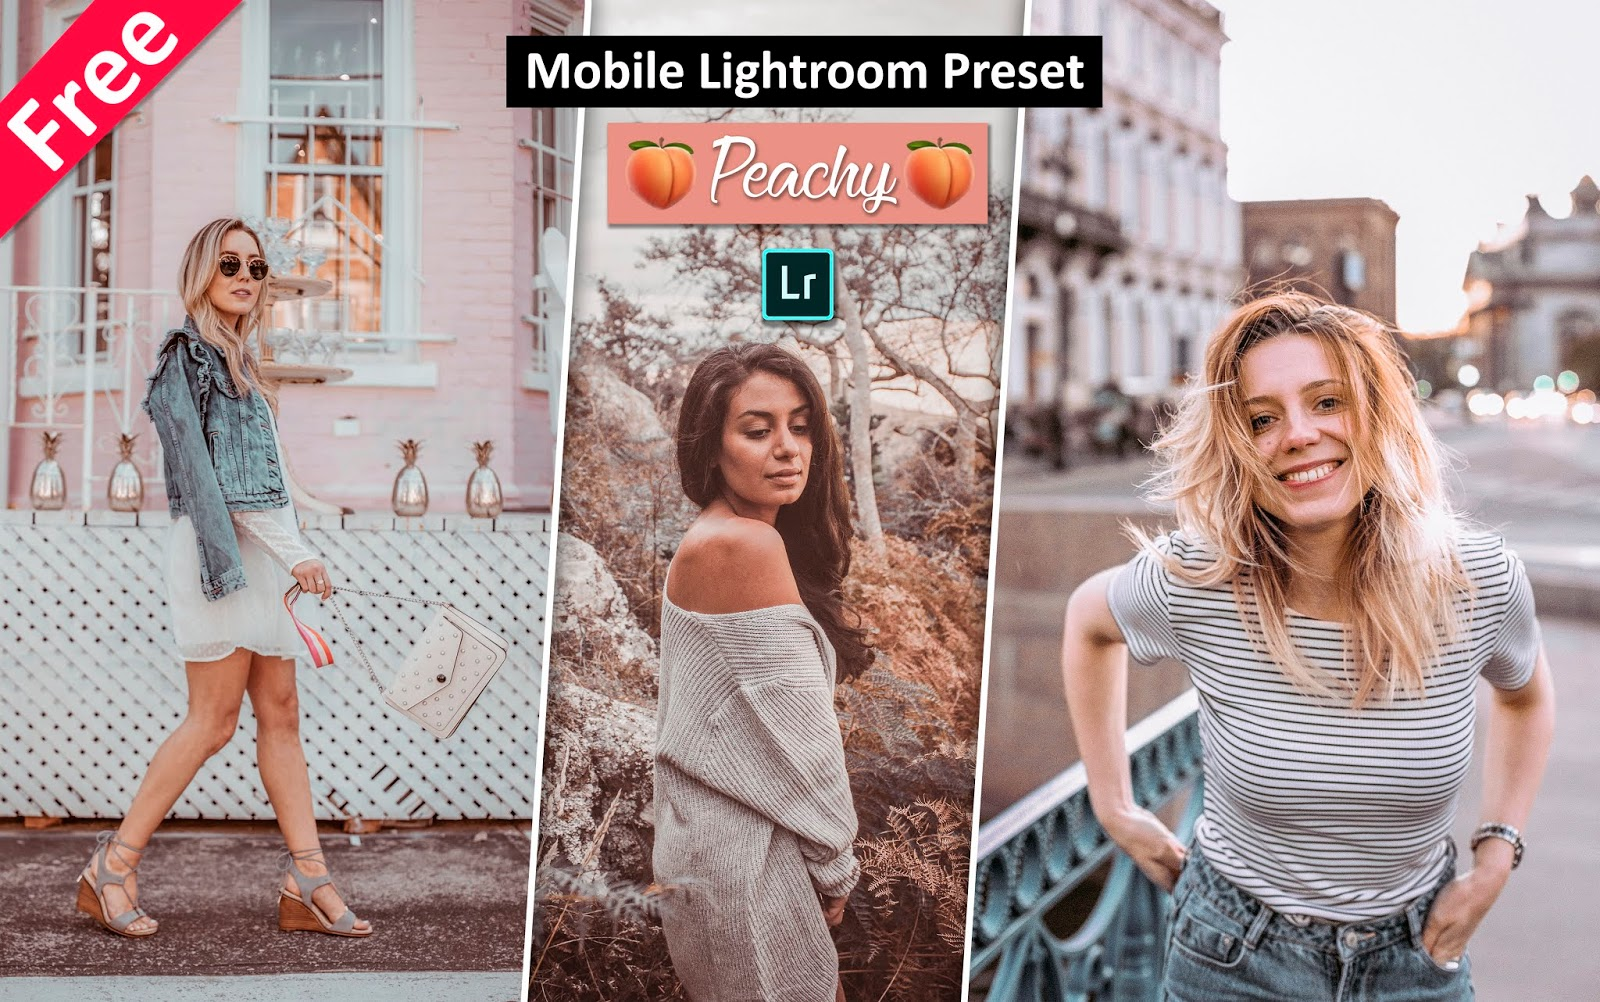 Download Peachy Mobile Lightroom Preset for Free | How to Create Peachy Pink Creamy Effect in Mobile Lightroom